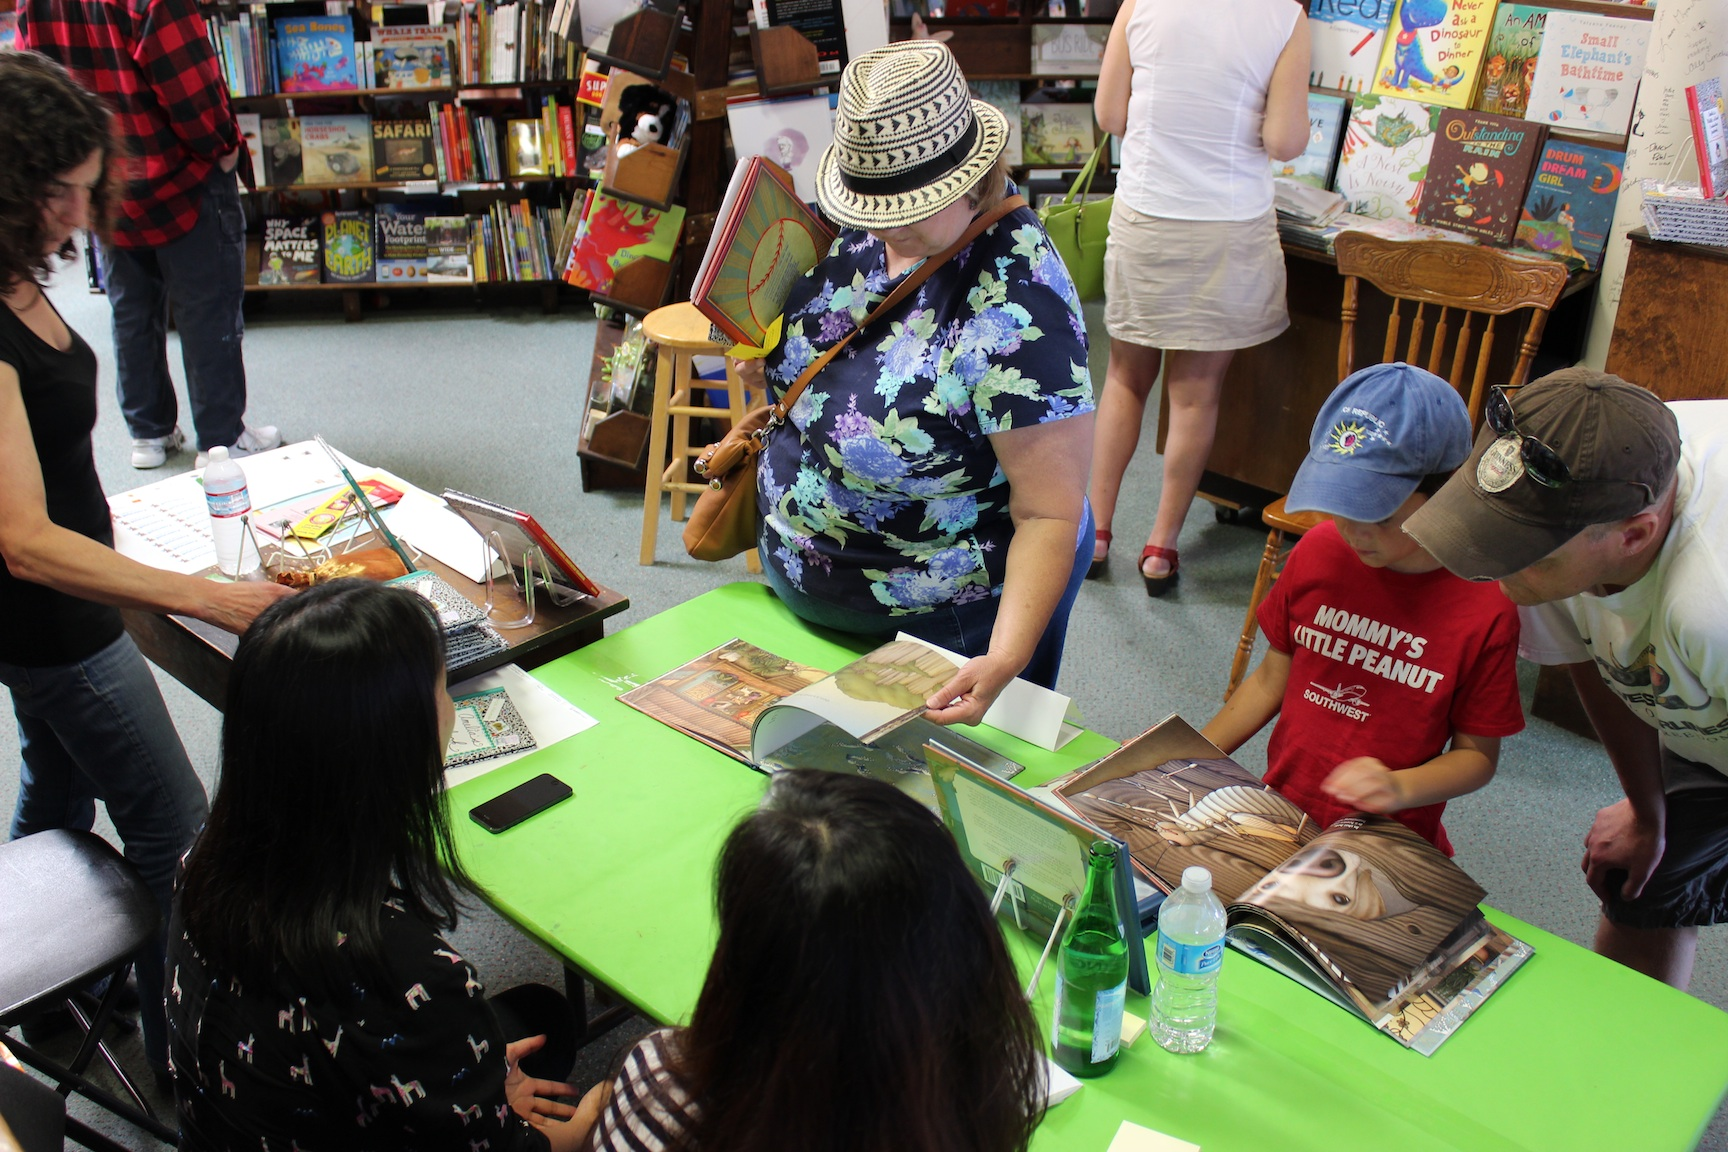 Muon and I answering questions from a curious young reader.